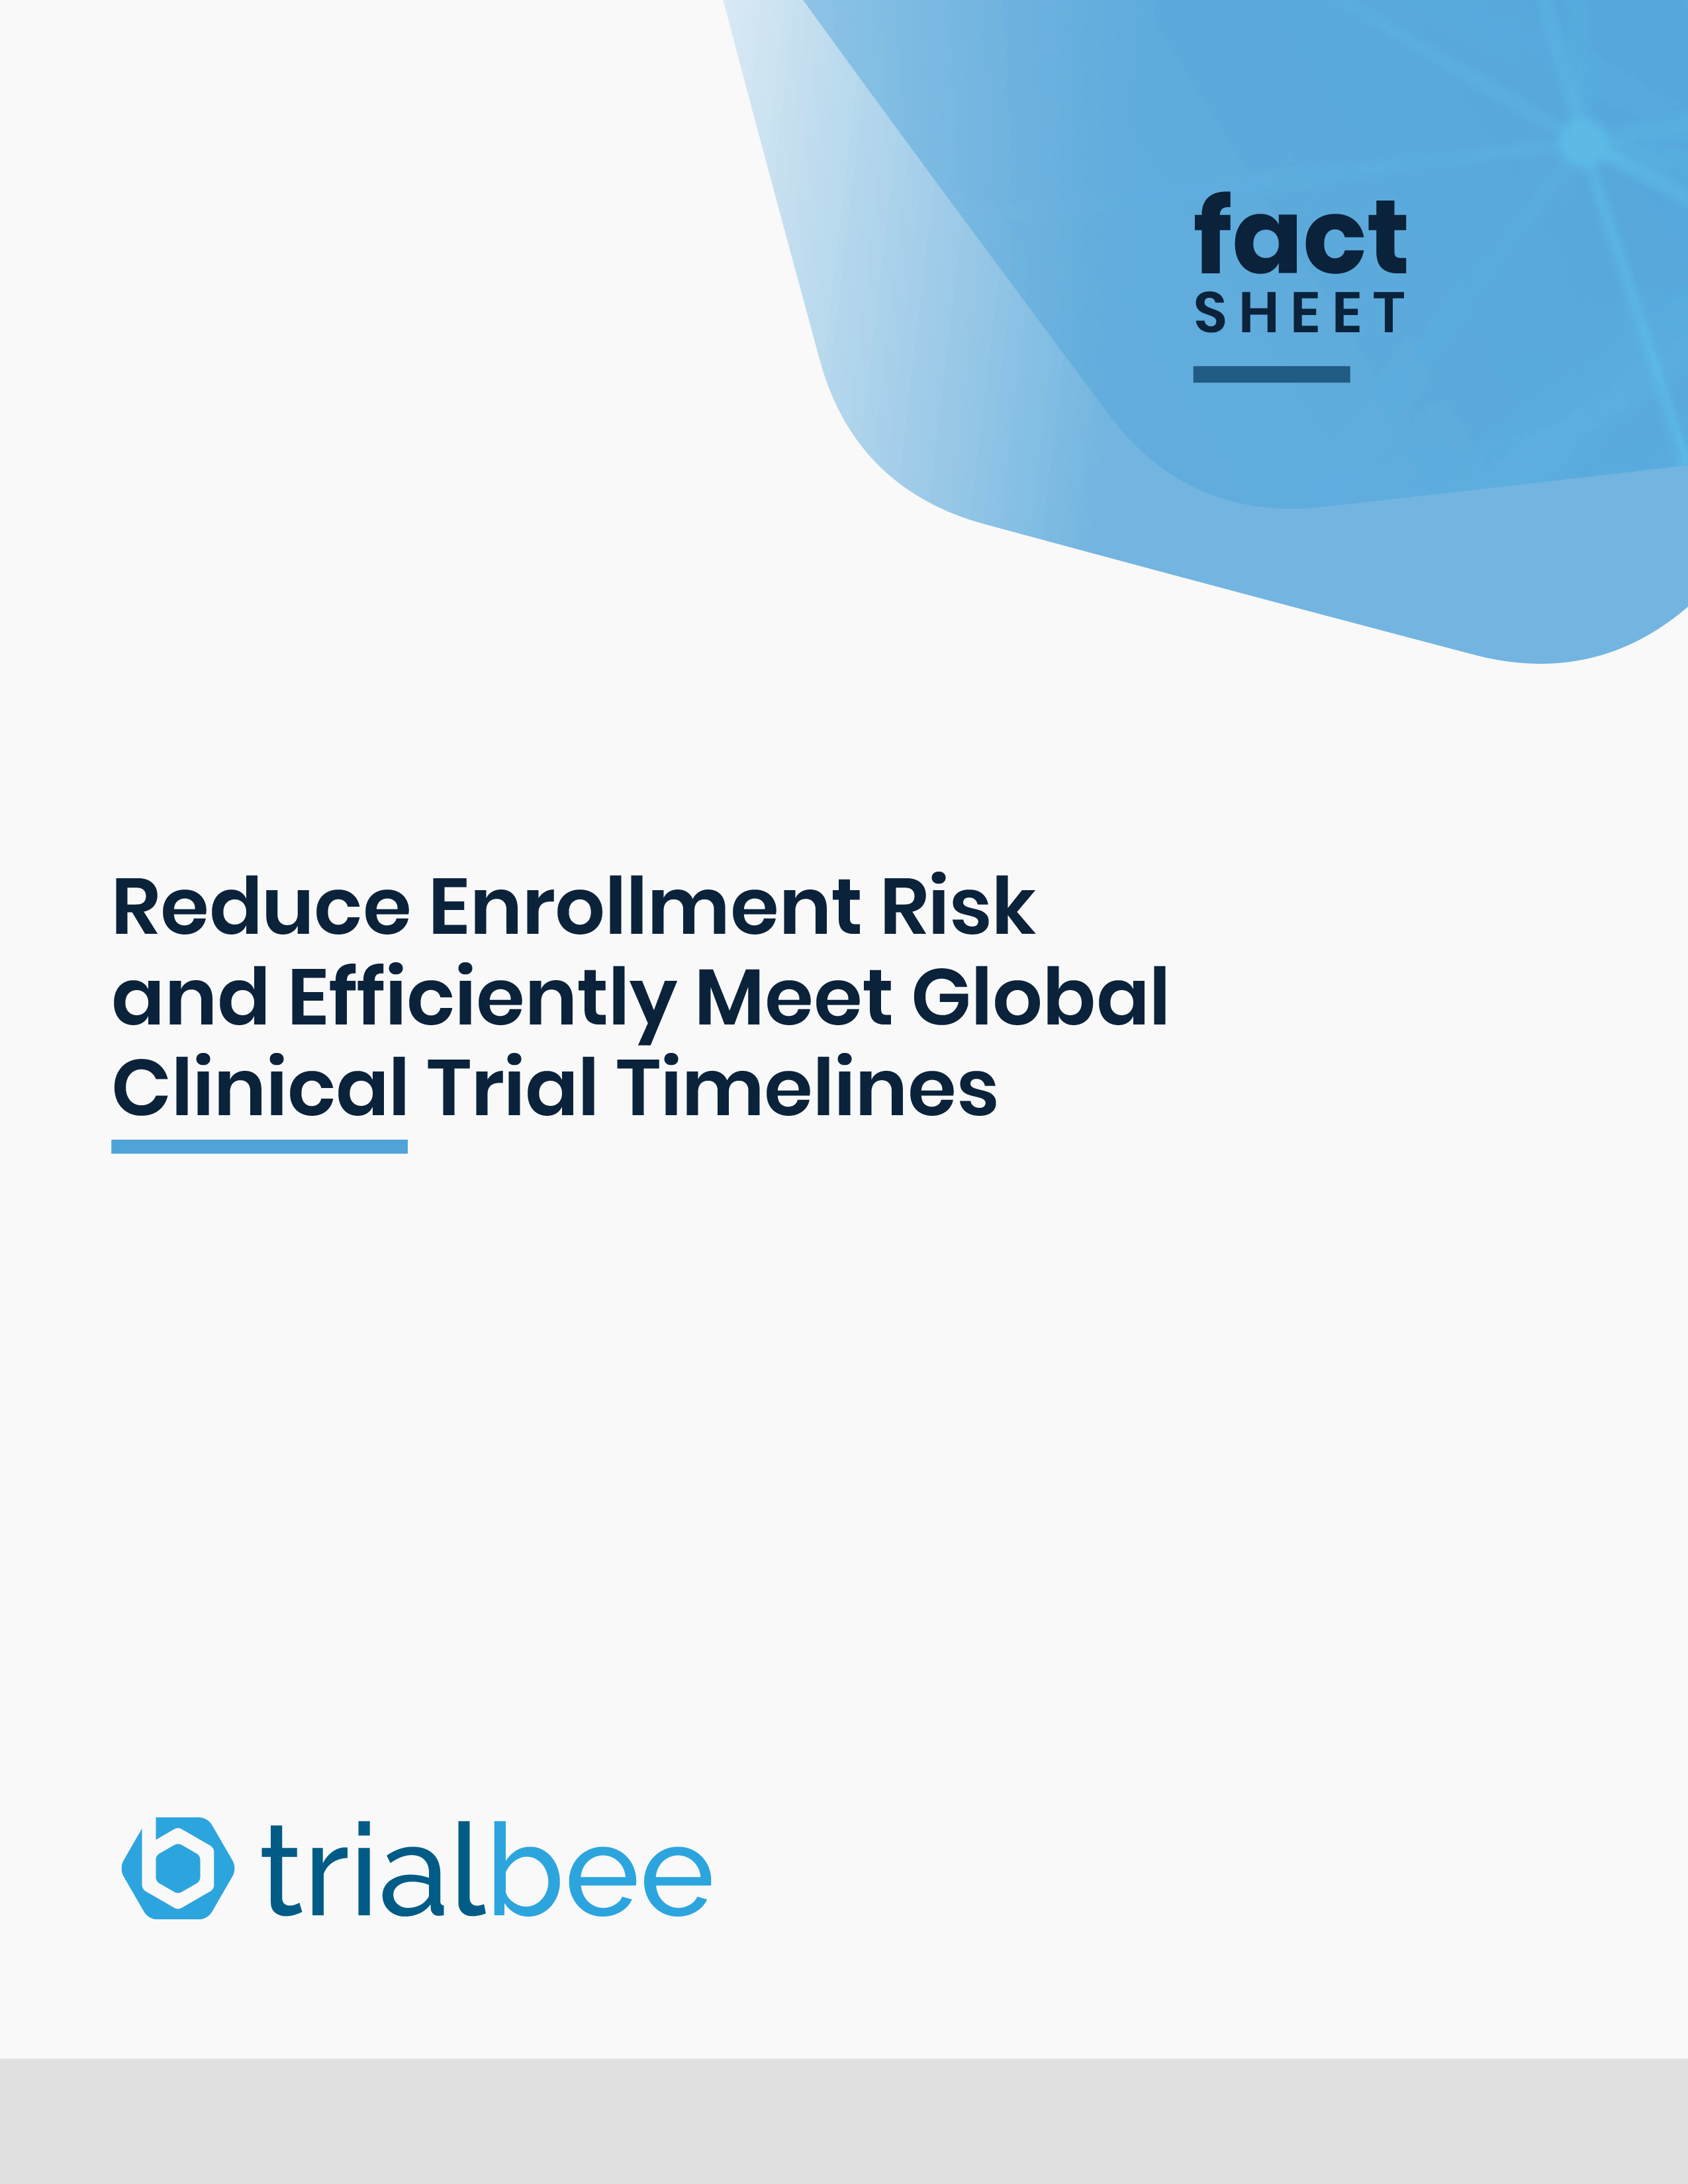 Reduce Enrollment Risk and Efficiently Meet Global Clinical Trial Timelines